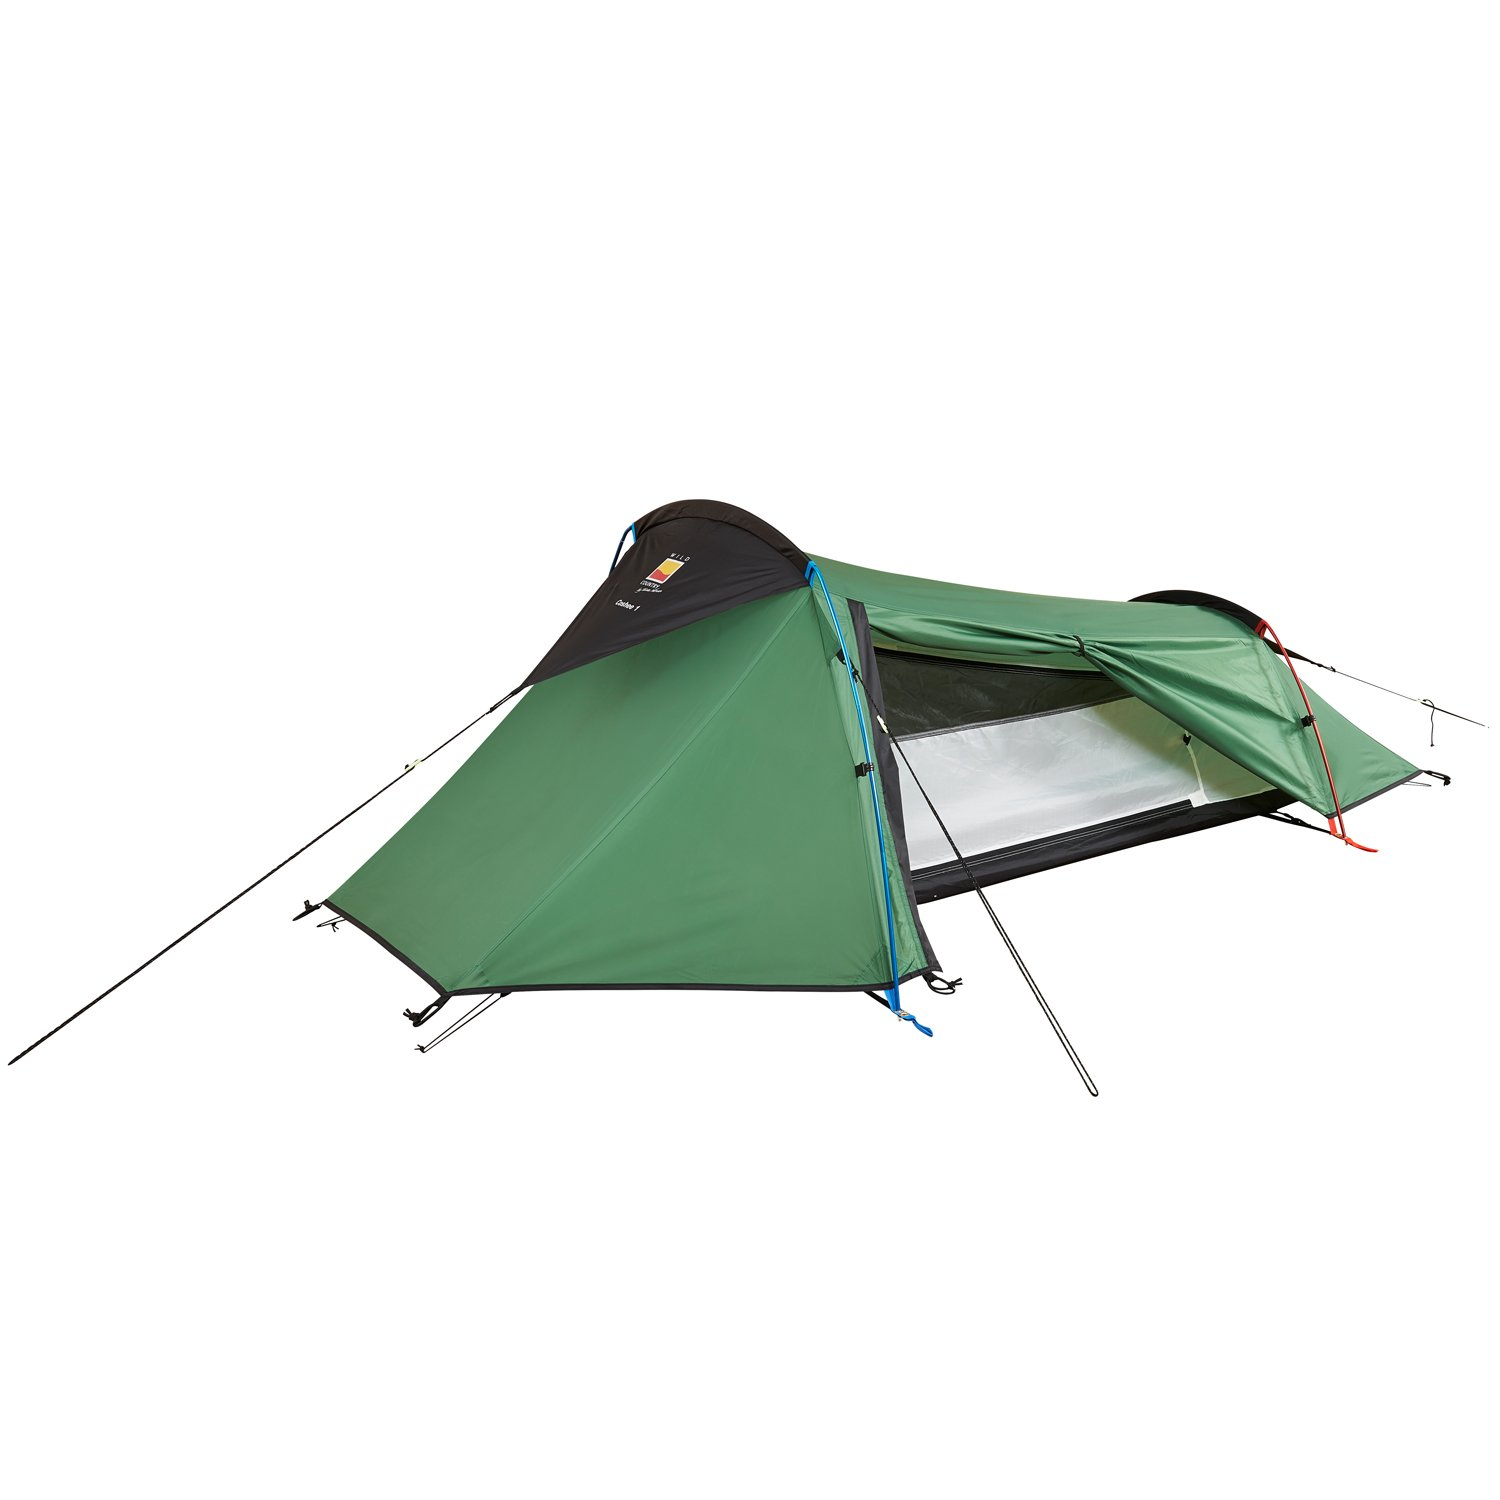 Coshee 1 Tent  sc 1 st  Terra Nova Equipment & Backpacking Tents from Terra Nova u0026 Wild Country - Terra Nova ...